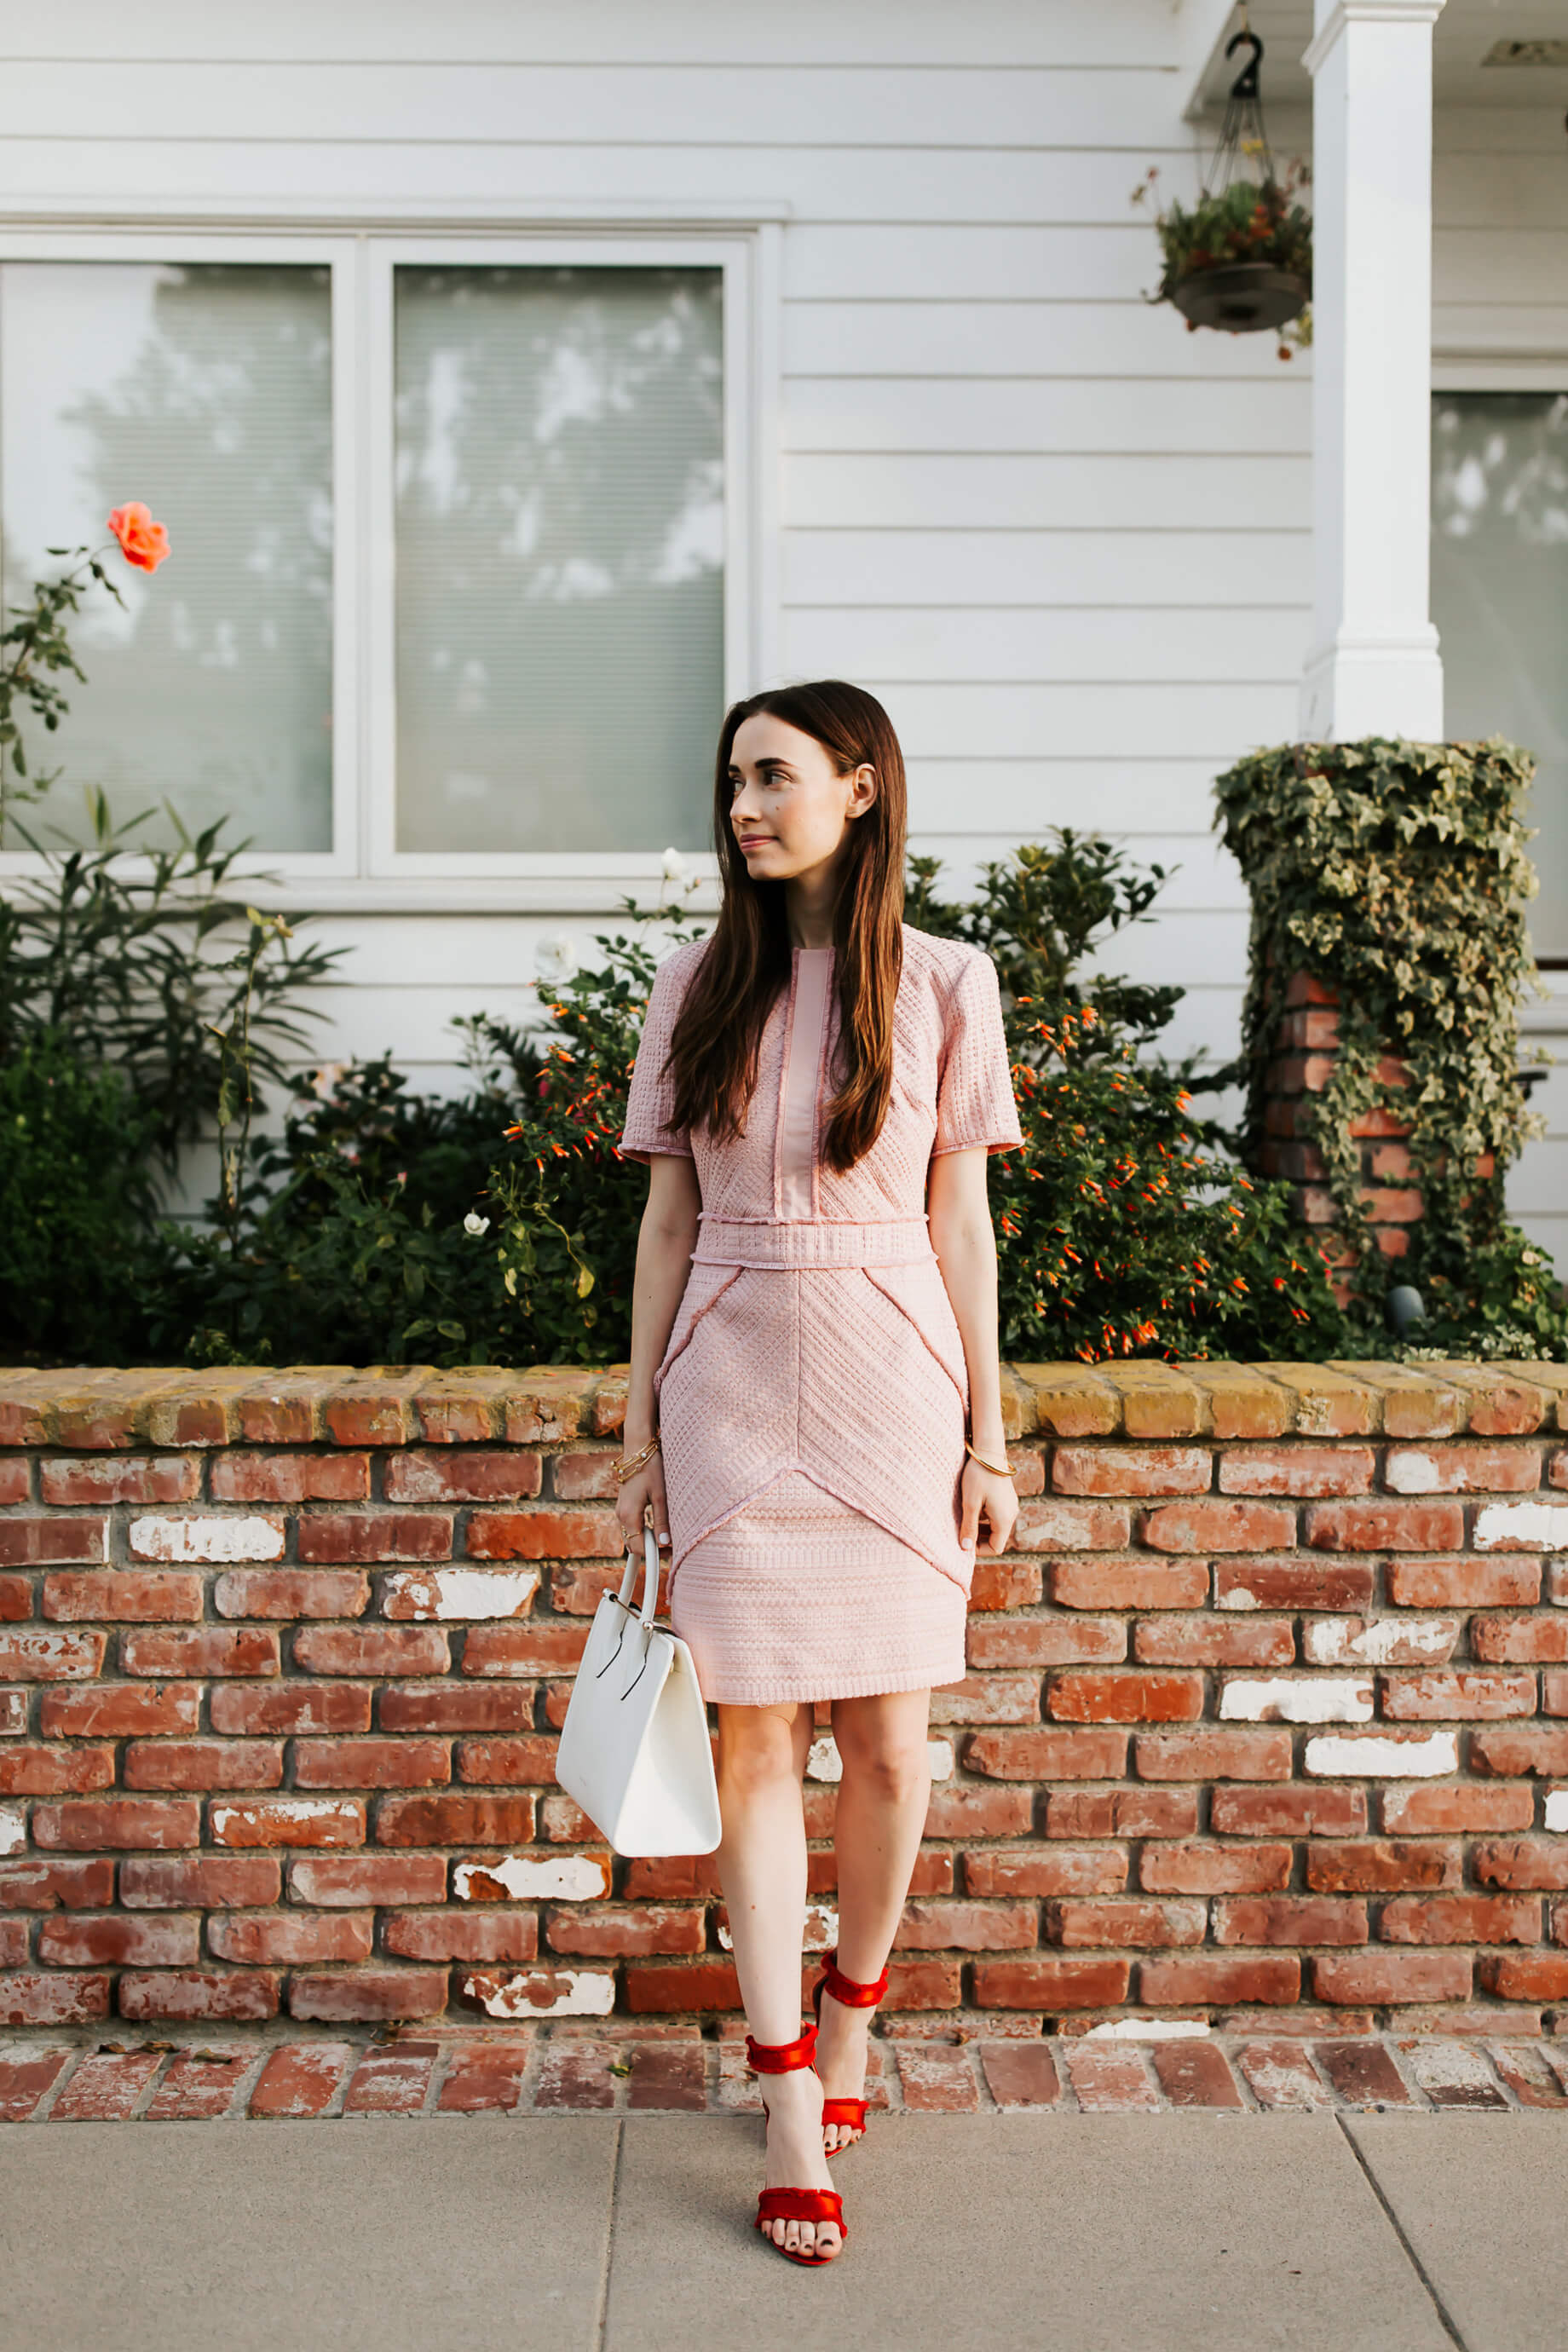 Shop these affordable Chanel-inspired dress options - M Loves M @marmar